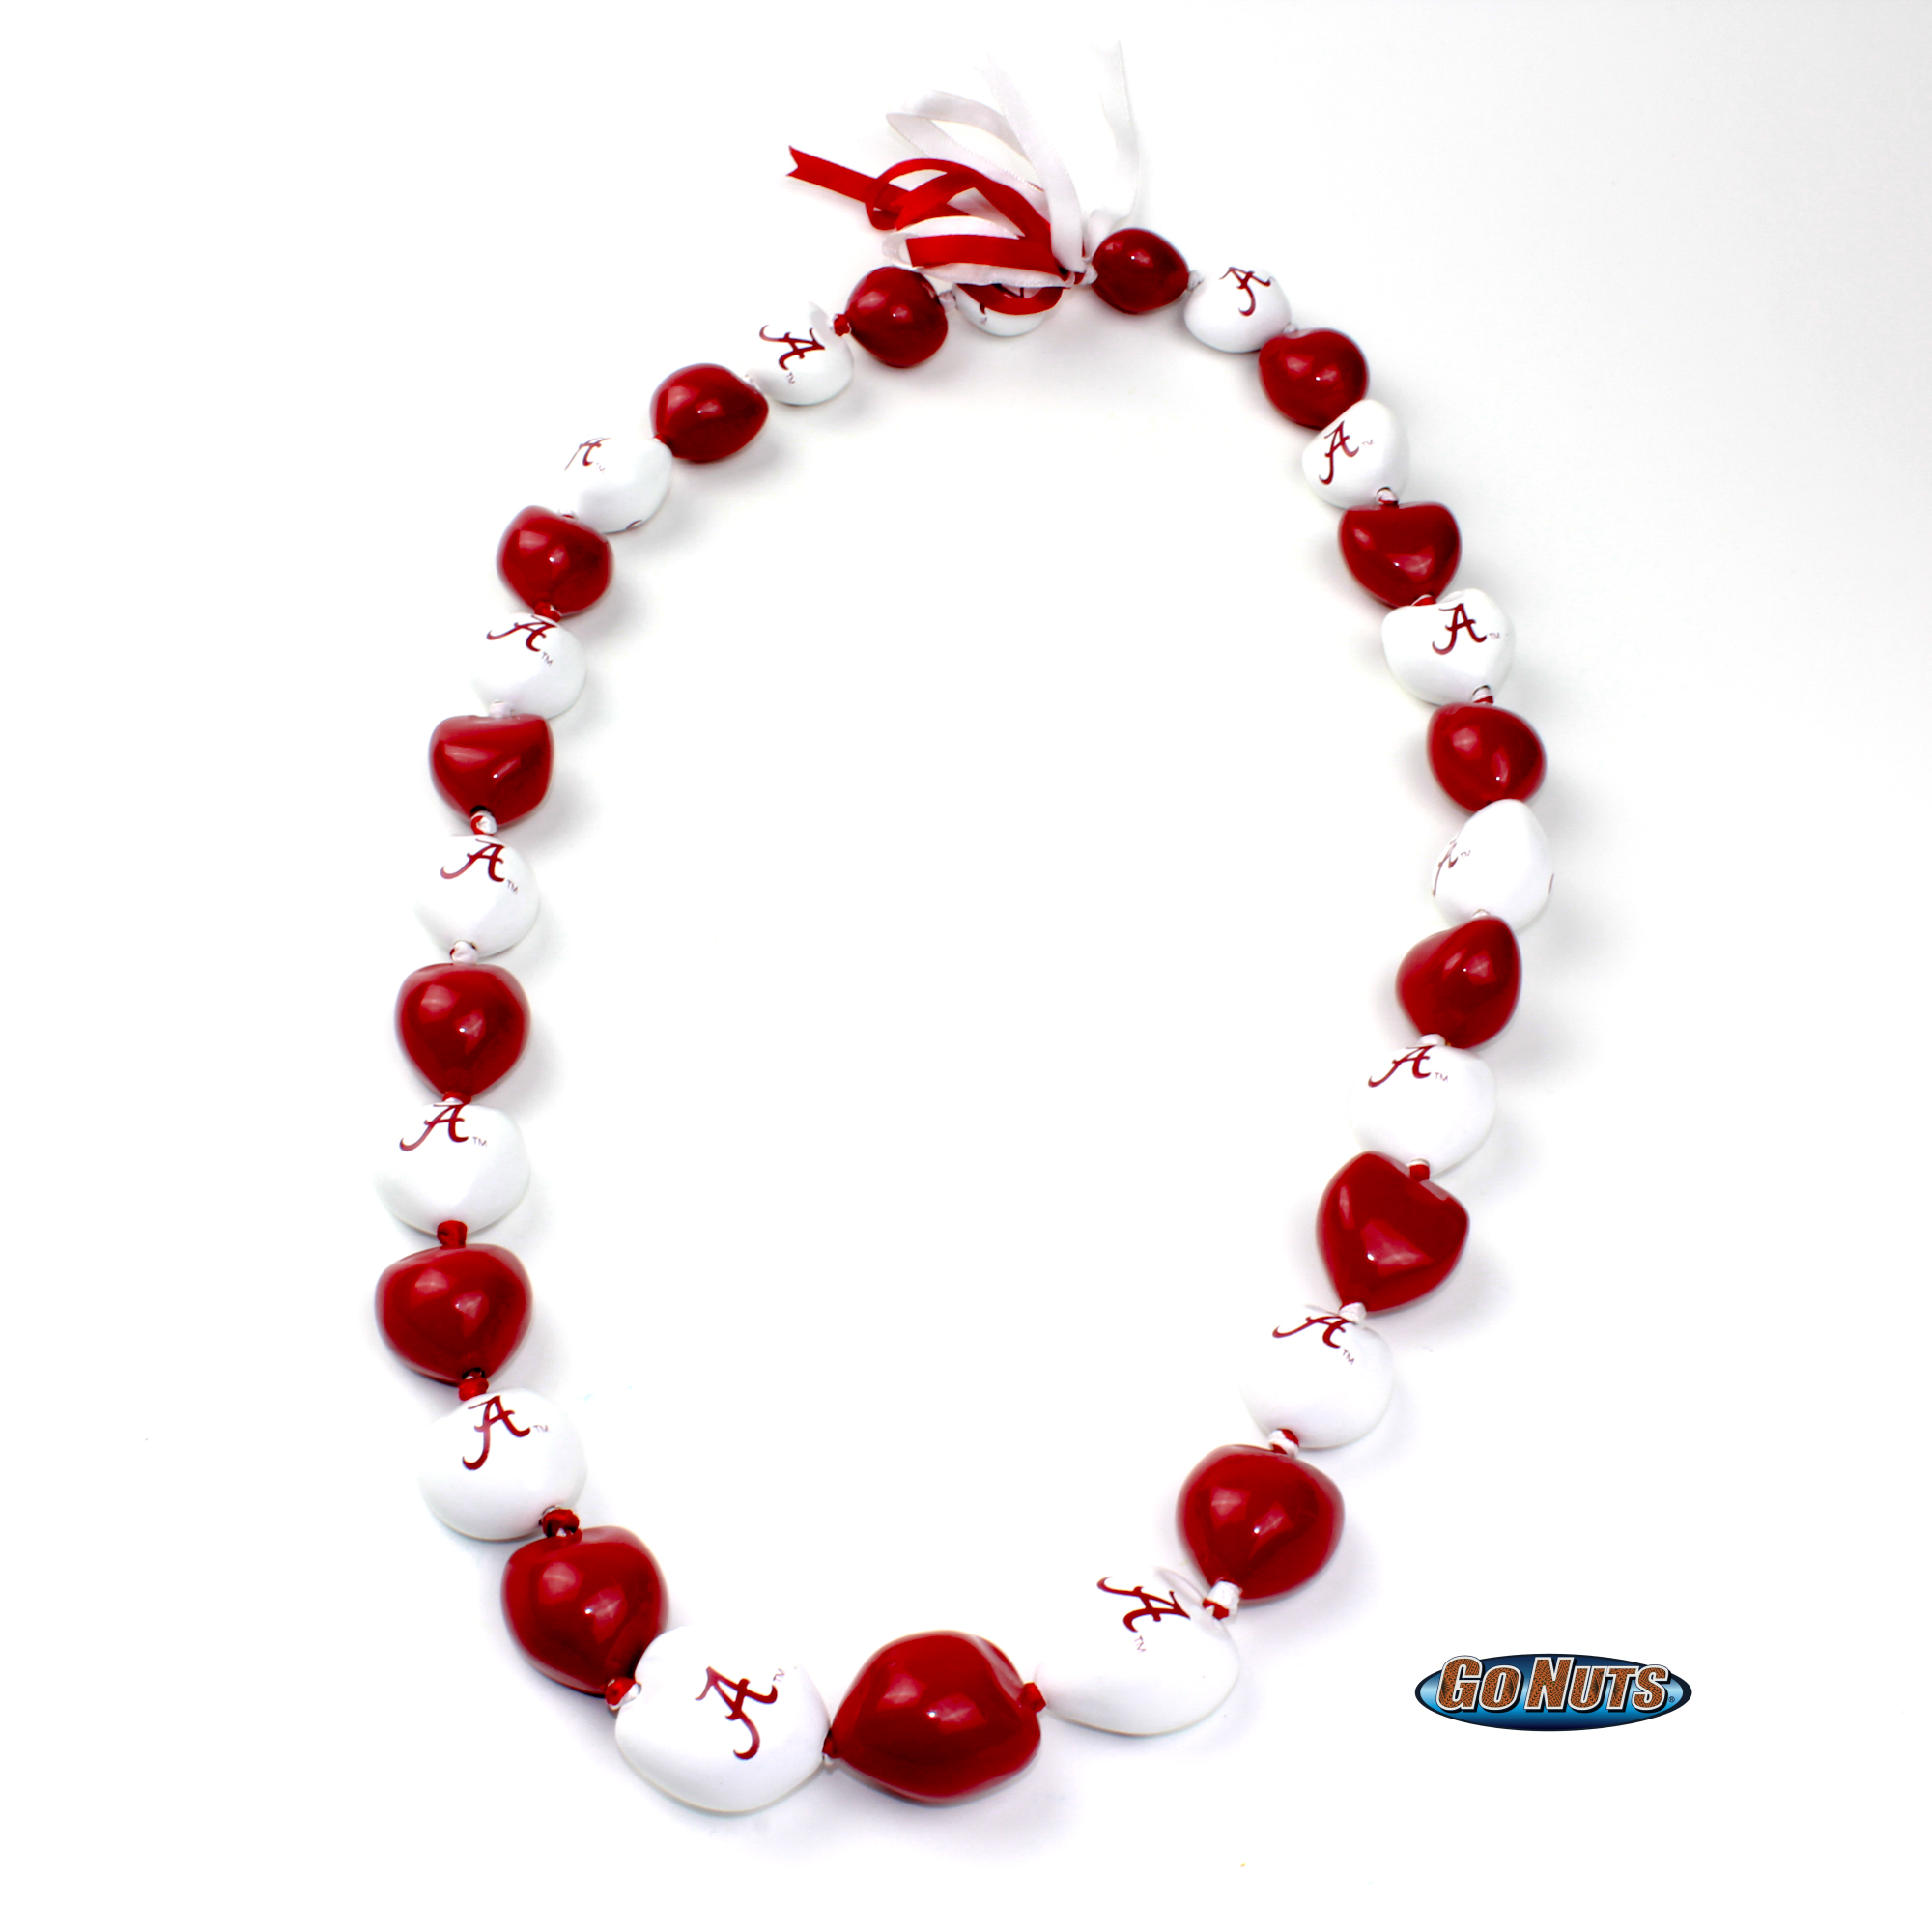 bead his crimson carved necklaces asian wood image necklace world inspired products collection collections